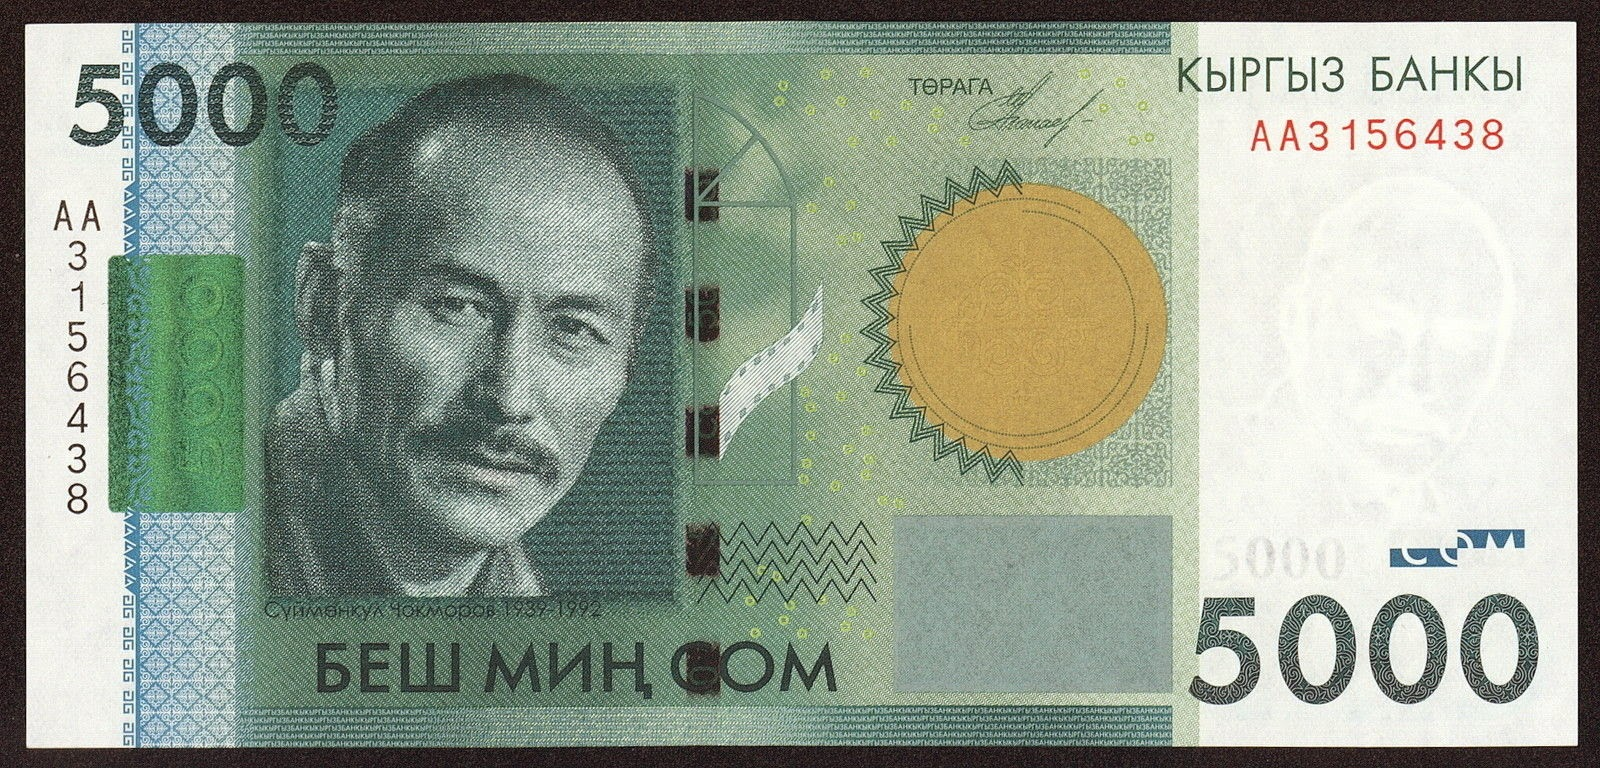 Kyrgyzstan currency 5000 Som banknote